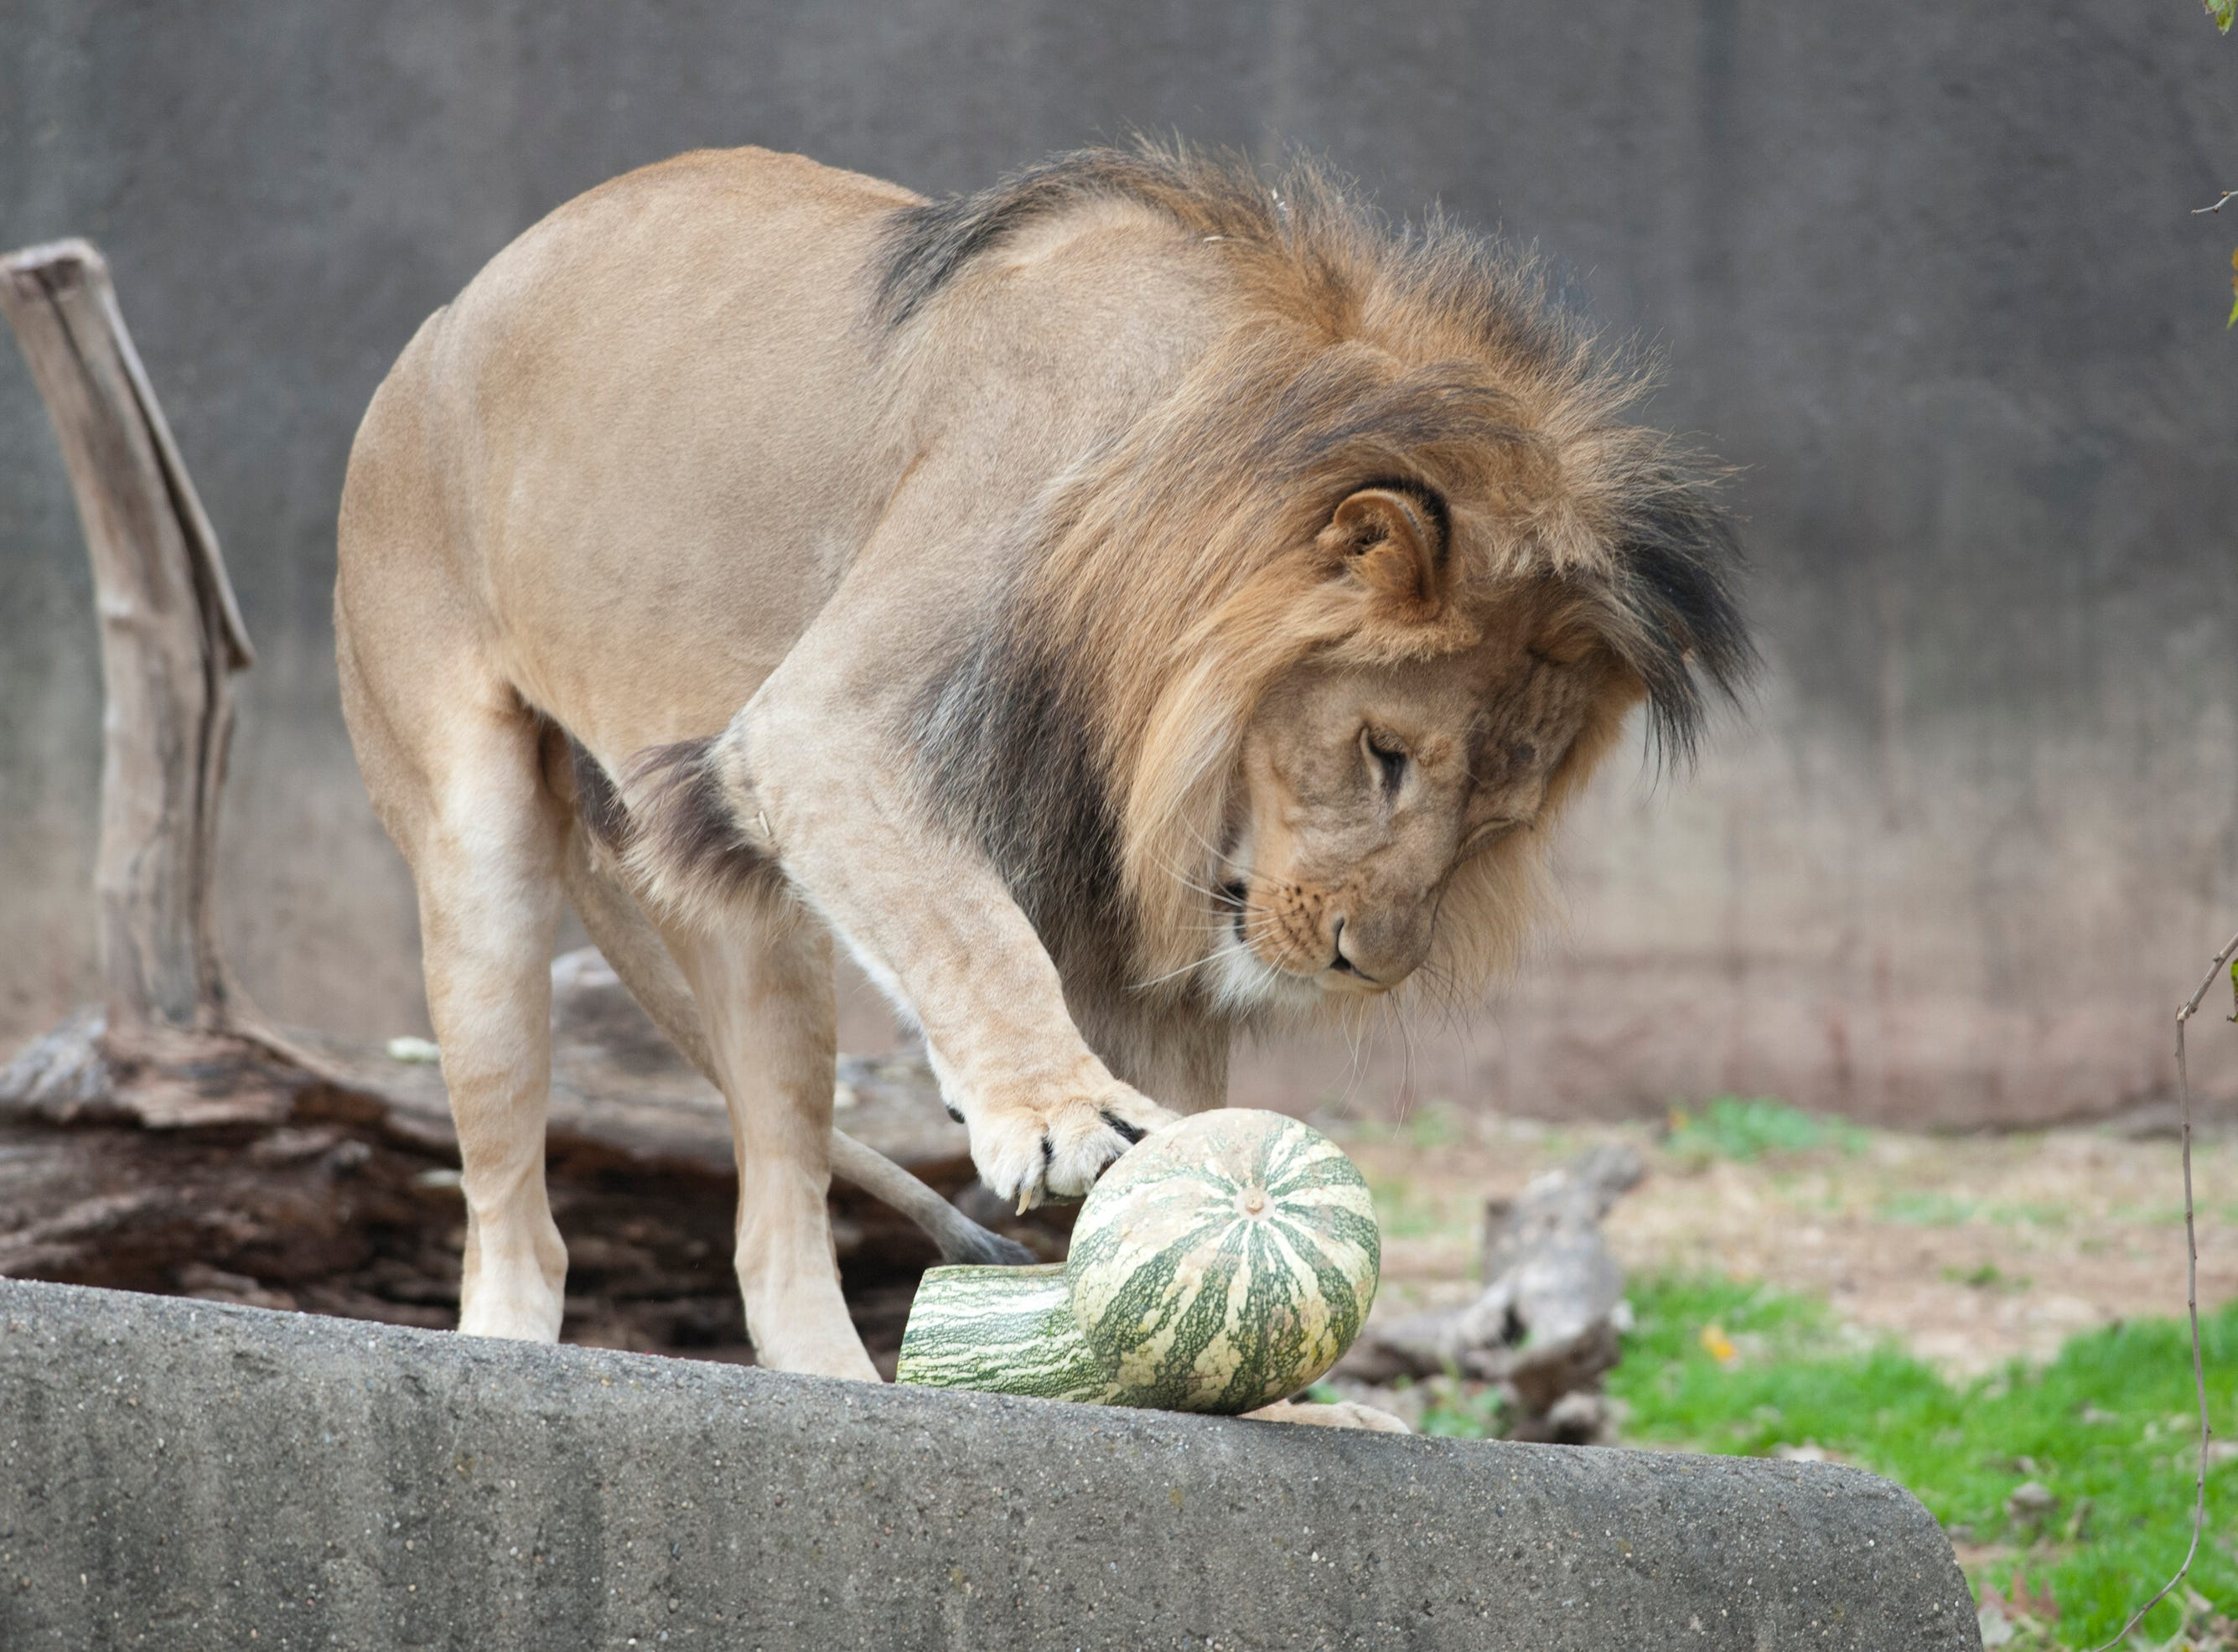 Siyanda, a 3-yr-old male lion investigates a gourd at the Louisville Zoo's annual pumpkin smash. The pumpkins being fed to the animals are from the zoo's Halloween event. November 04, 2018